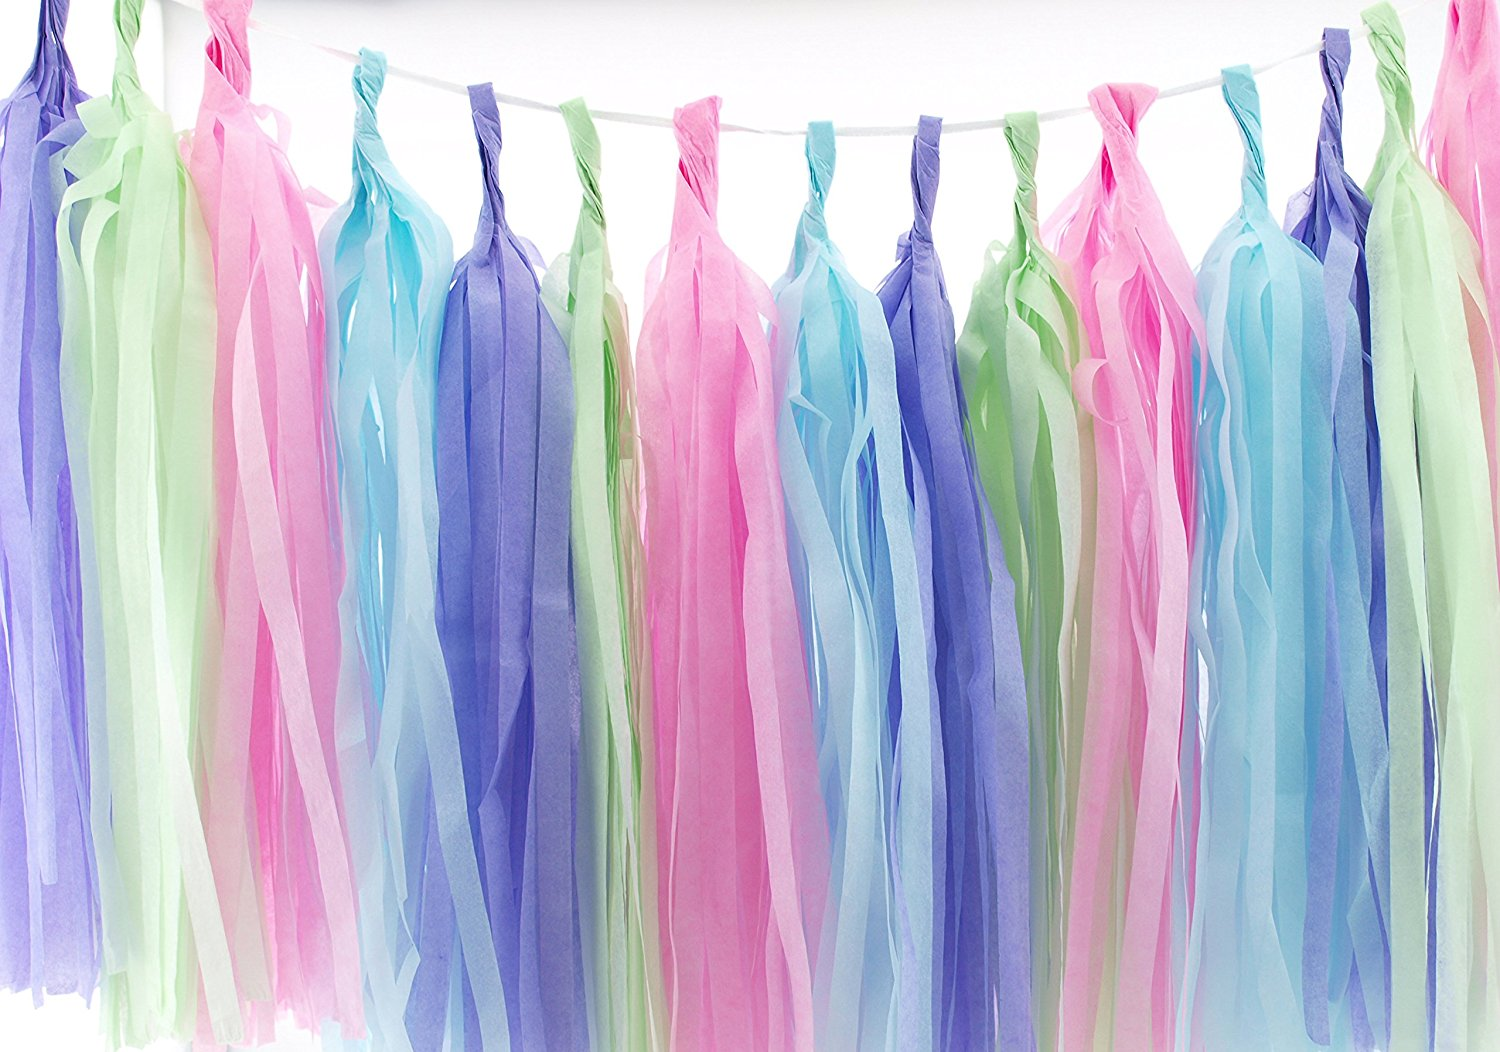 Easter Garland, Pastel Wedding Tassels (Set of 20) - Easter Party Supplies, Pink, Blue, Mint Green & Lavender Purple Easter Streamer Decorations, Pastel Wedding Backdrops Paper Tissue Garland